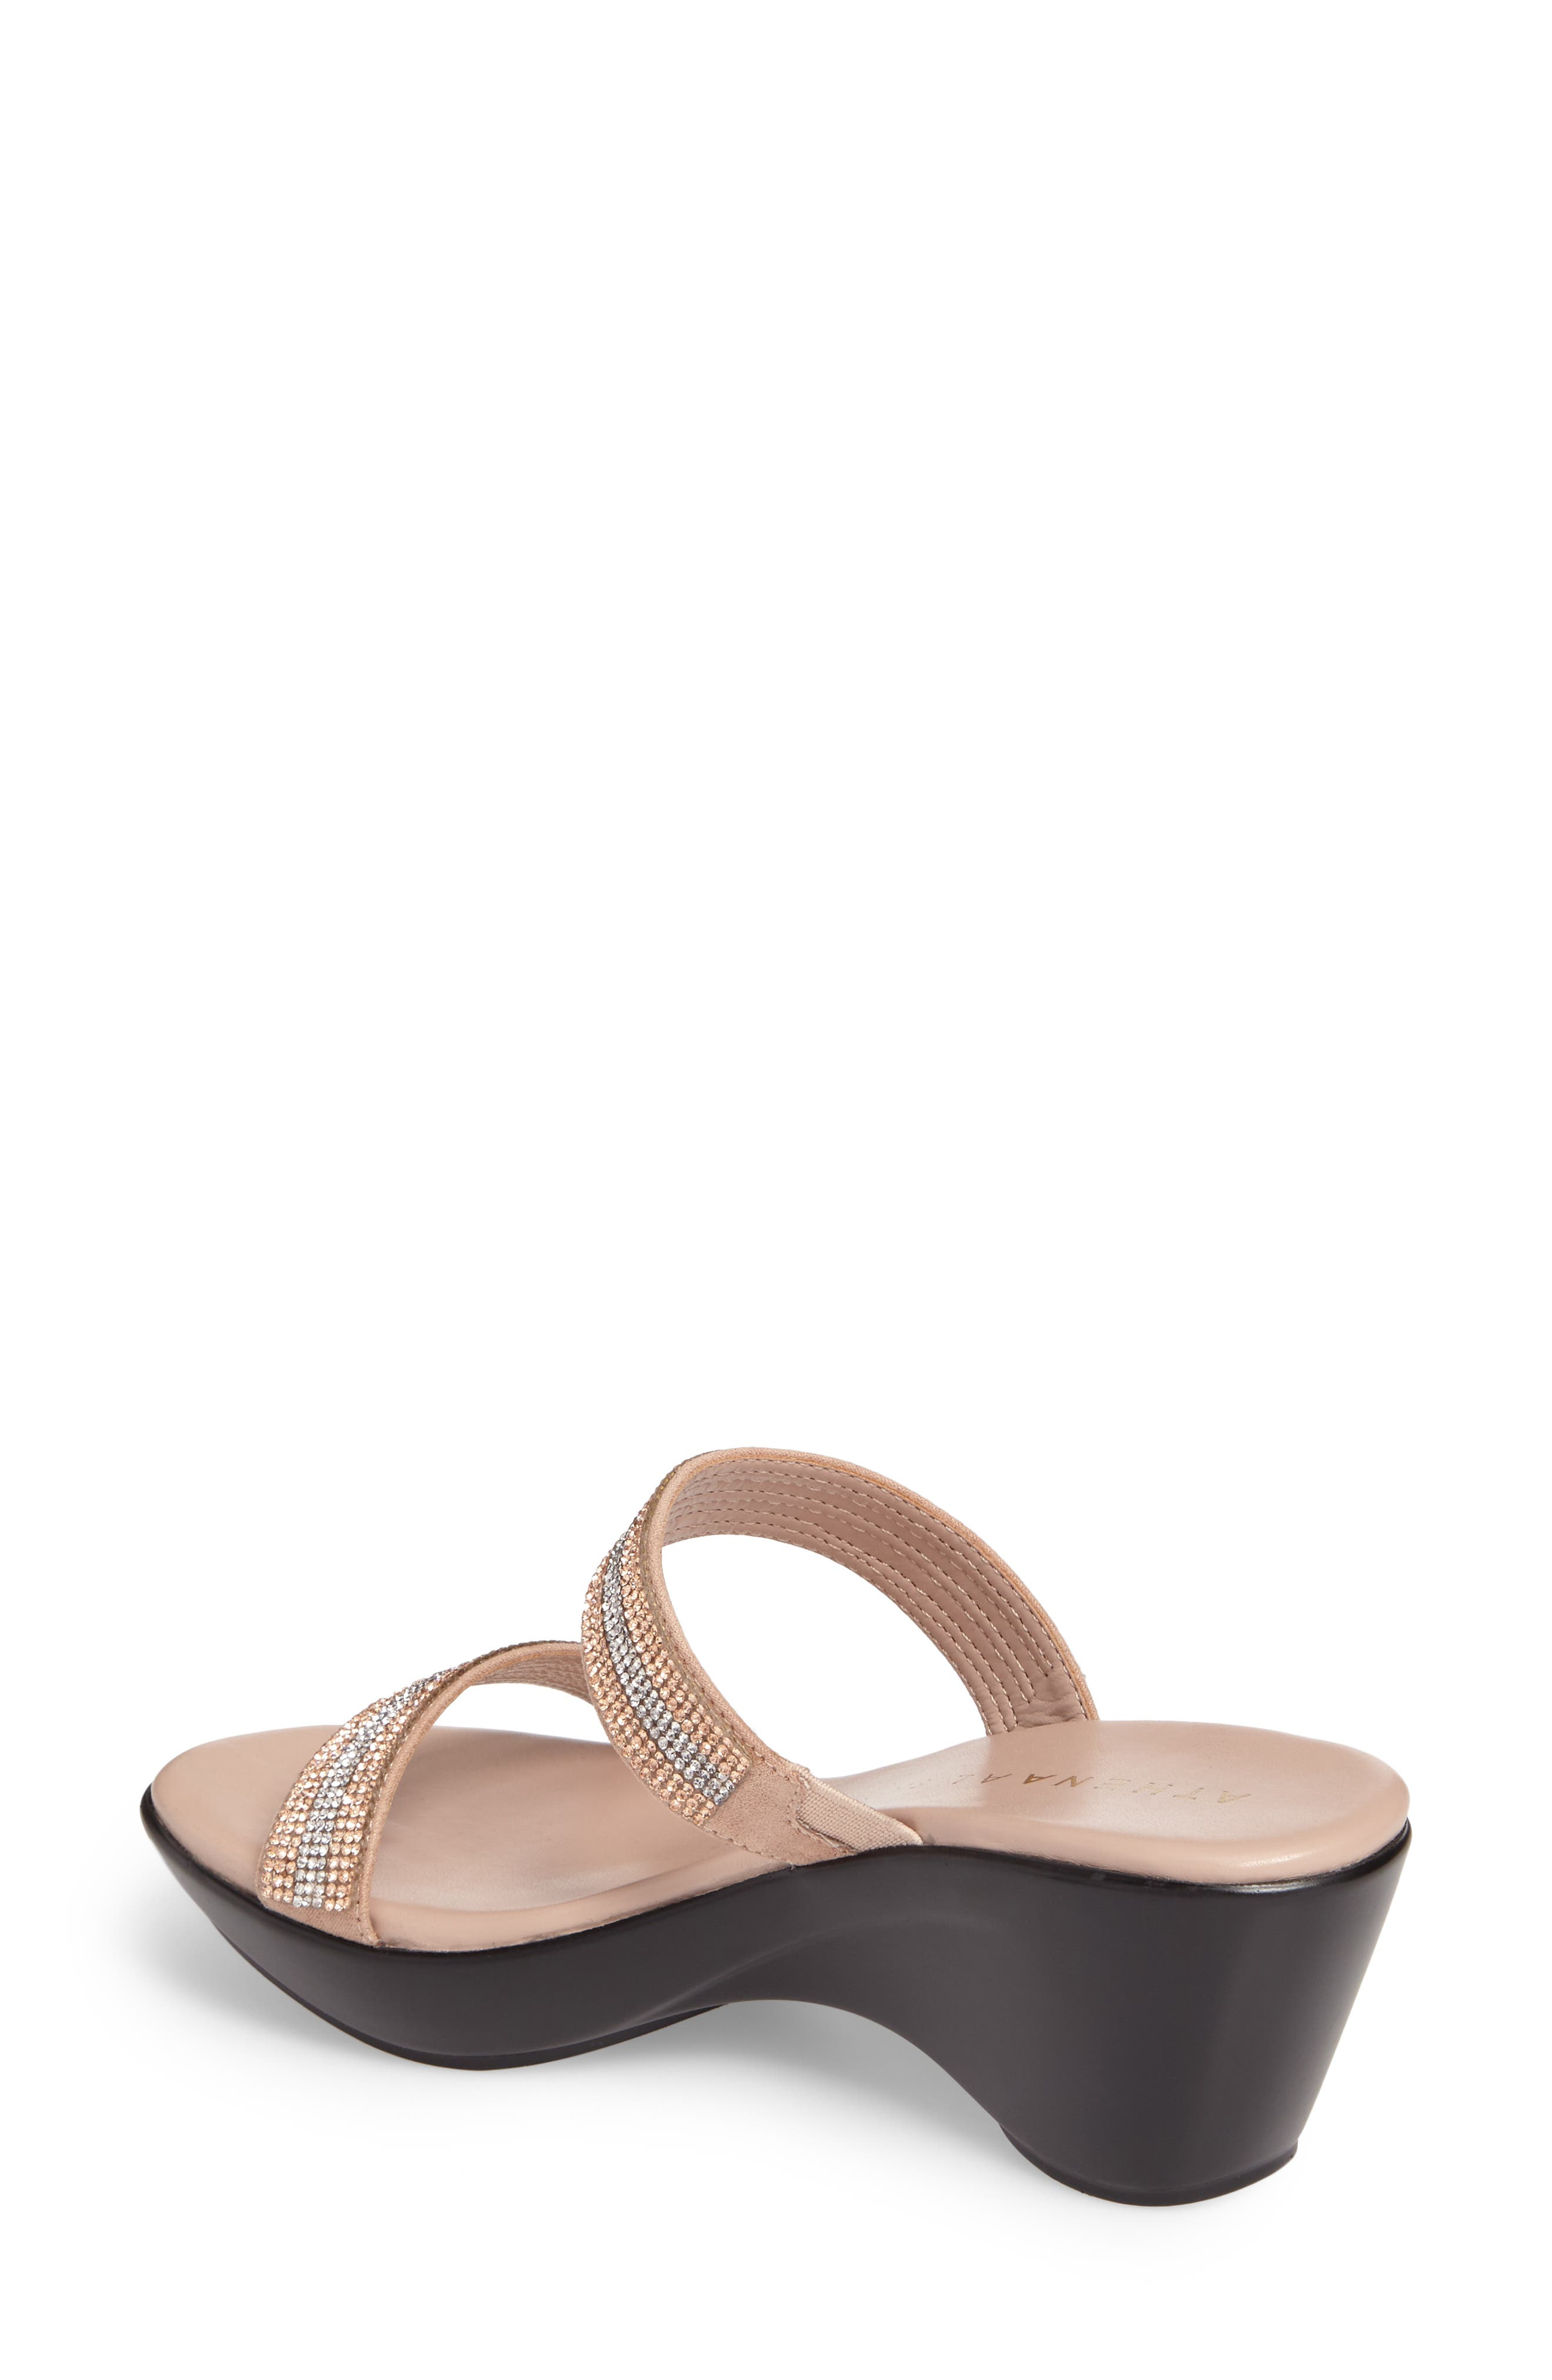 Arlo Wedge Sandal,                             Alternate thumbnail 2, color,                             Rose Gold Synthetic